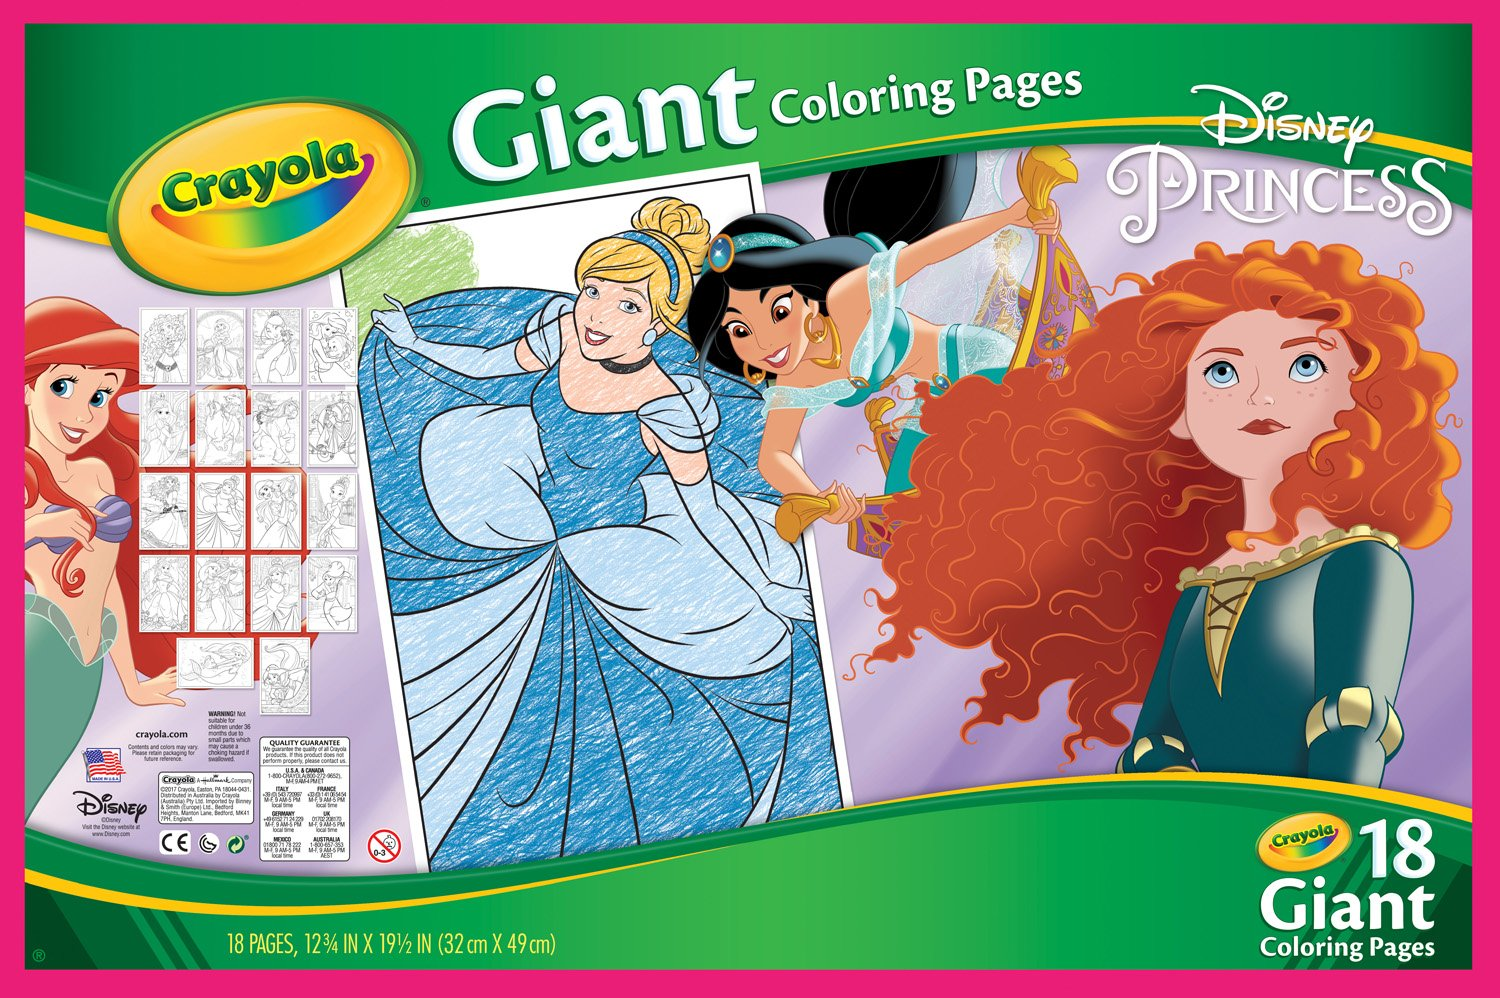 Crayola disney princess giant coloring pages - Crayola Disney Princess Giant Coloring Pages 29